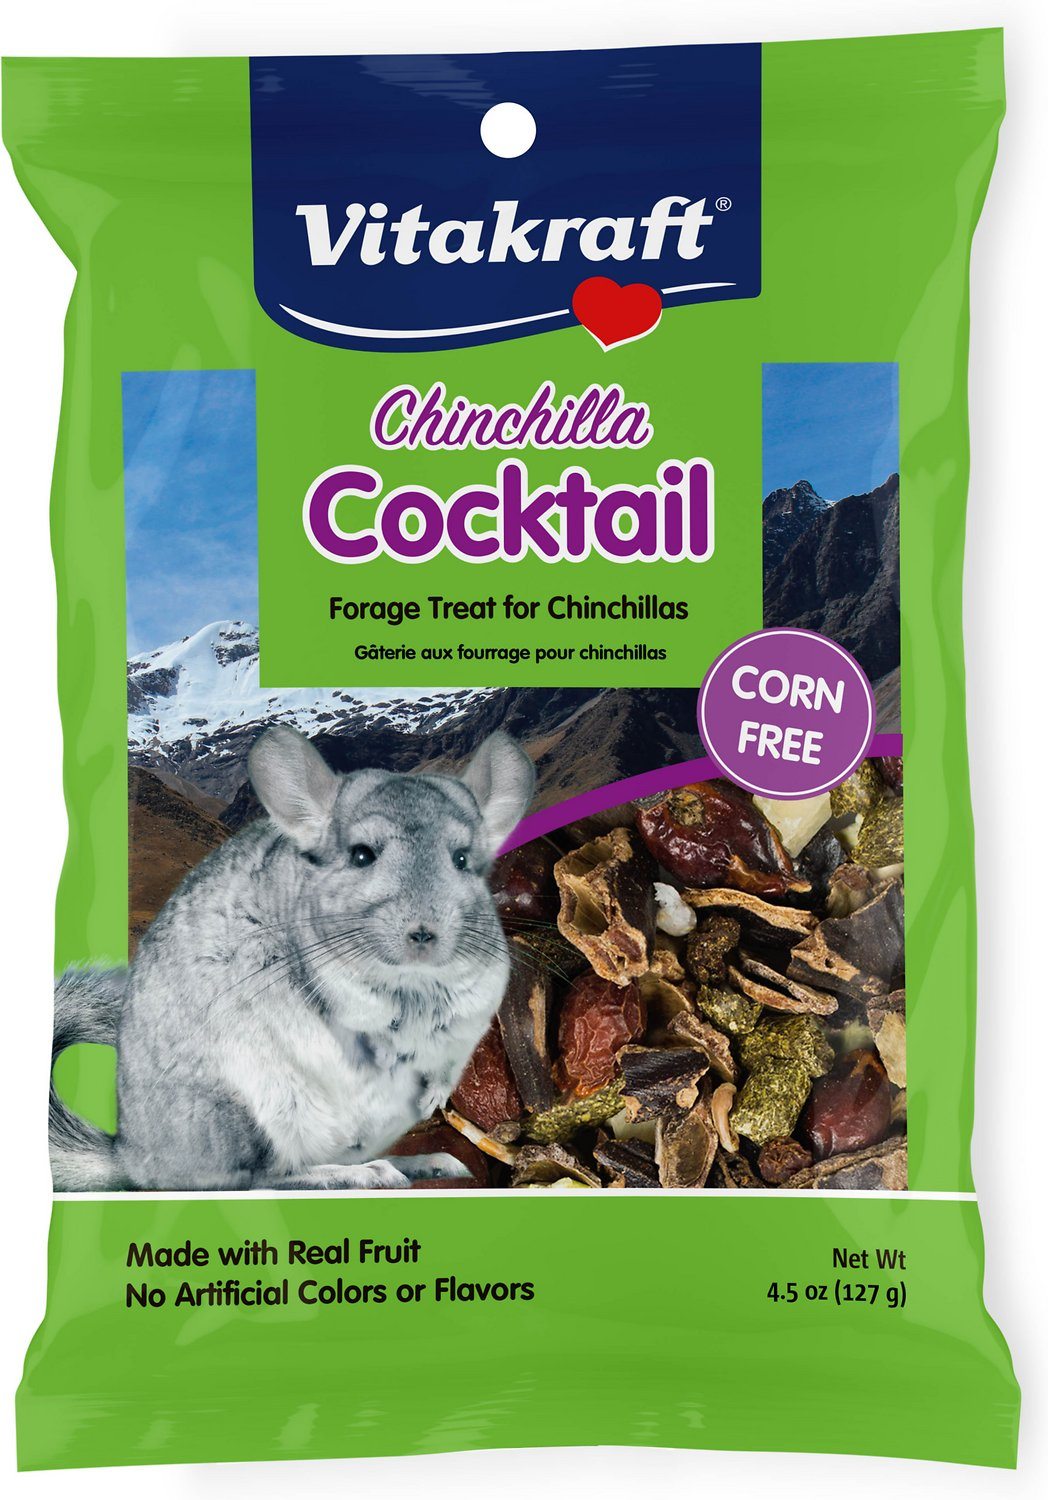 Vitakraft Chinchilla Cocktail Forage Treat